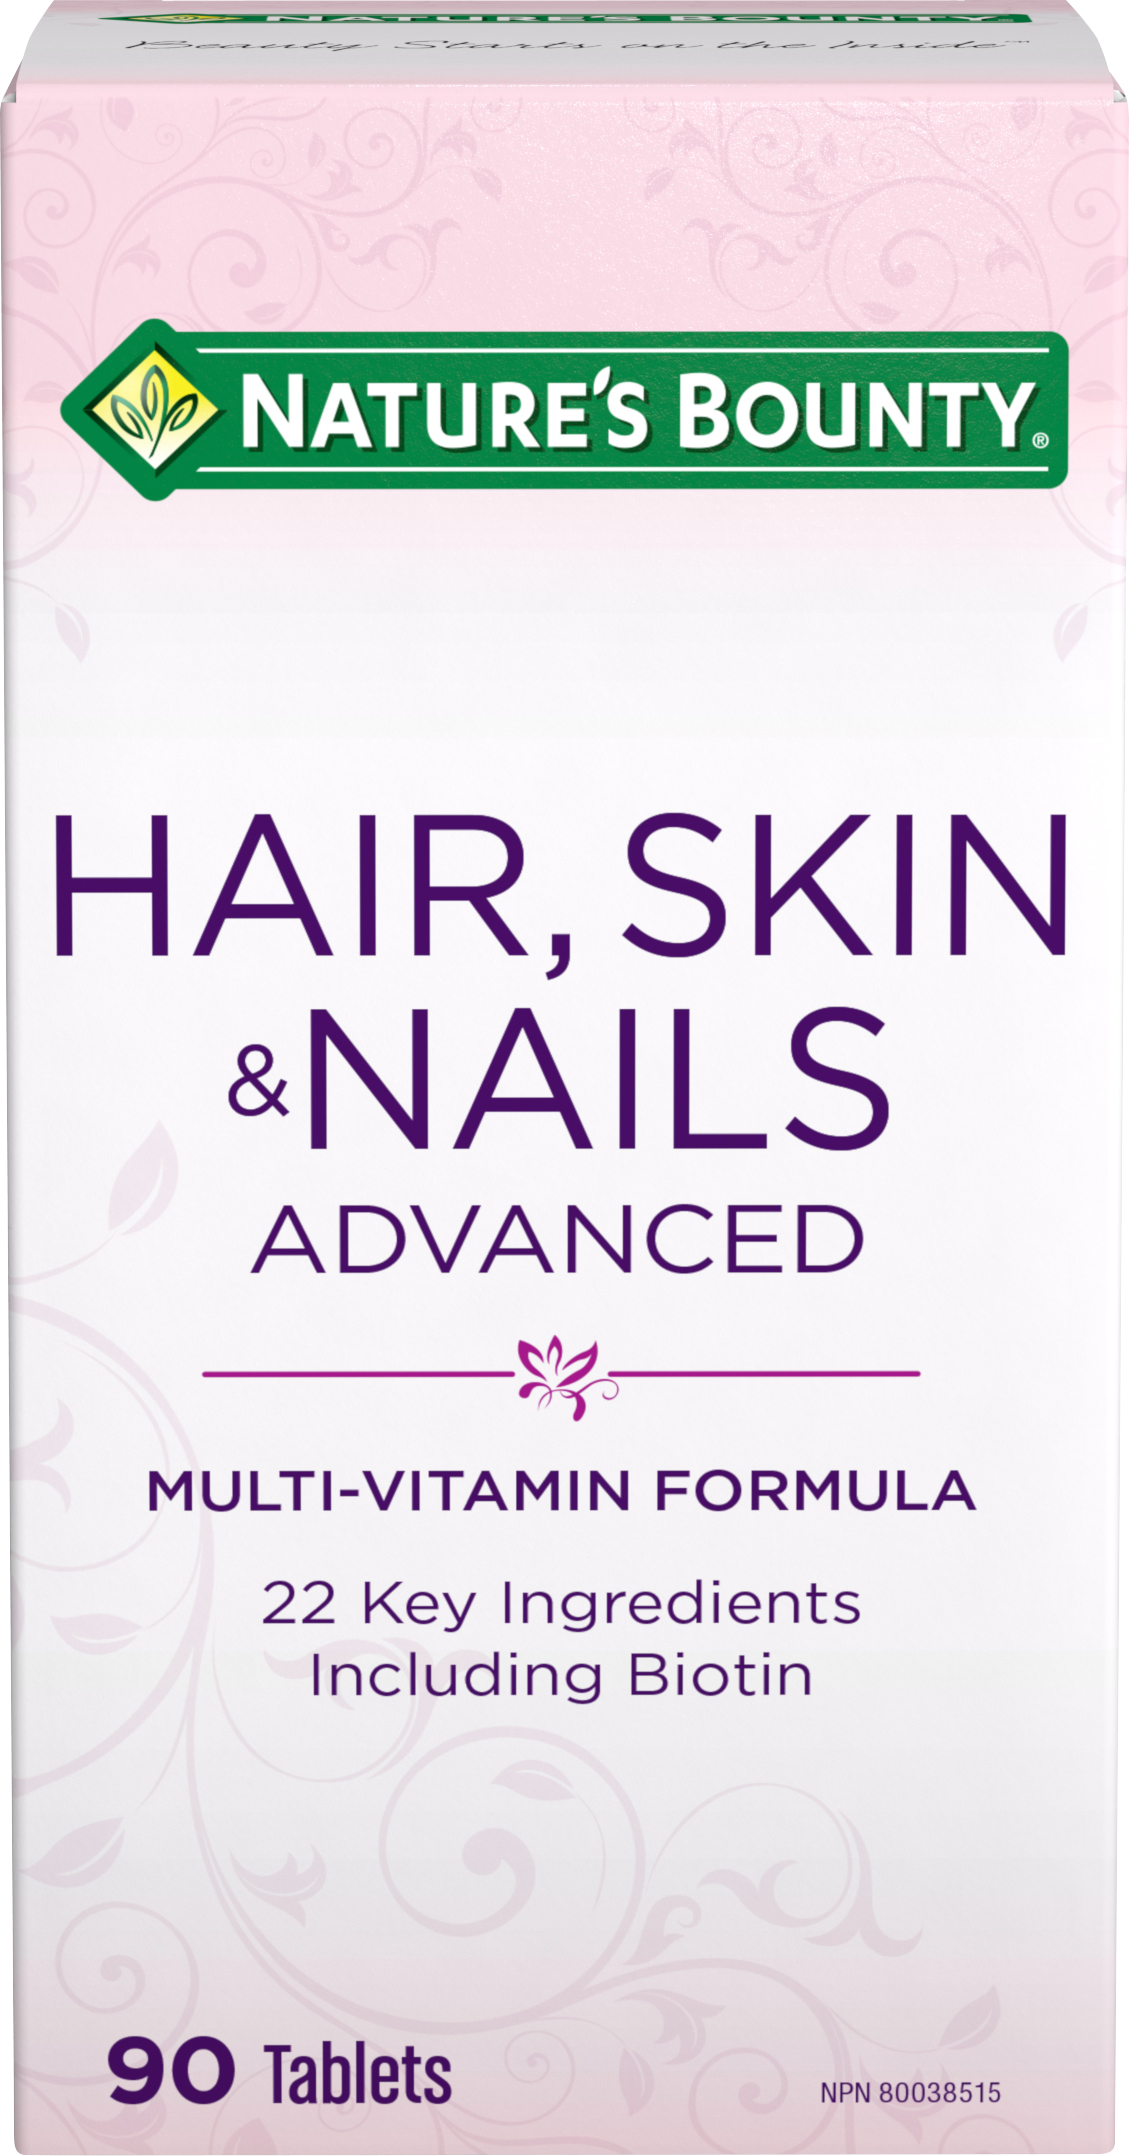 Hair, Skin & Nails Advanced